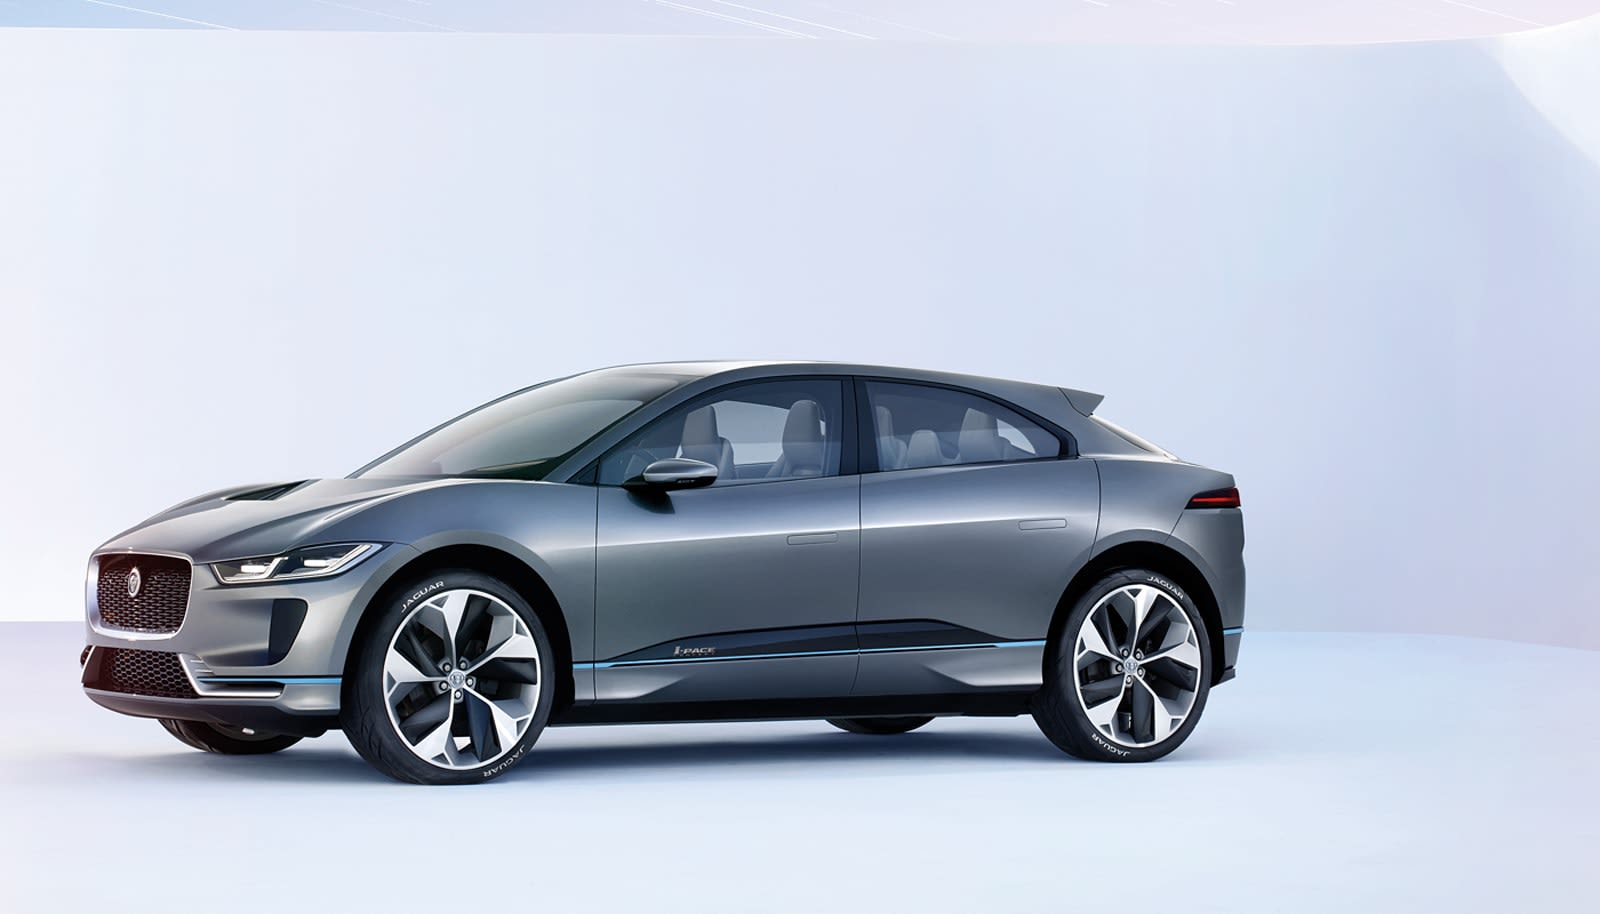 Jaguar Introduces Its First Electric Concept Car